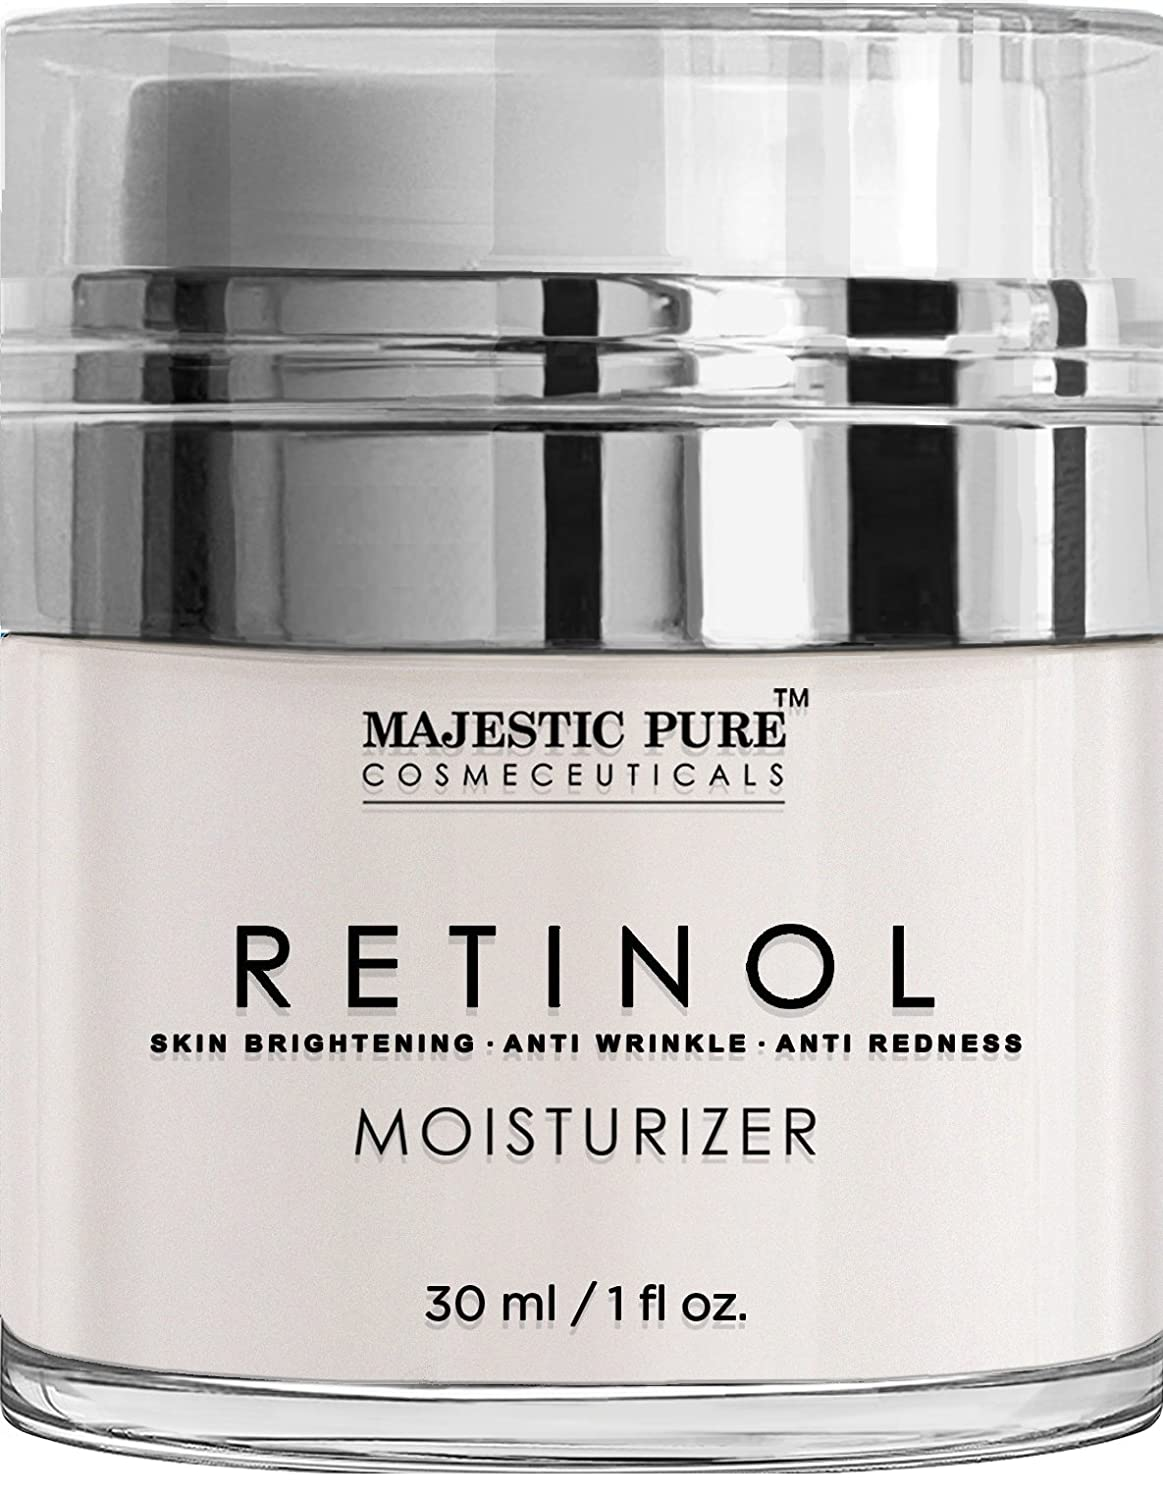 Majestic Pure Retinol Cream, Moisturizing Cream for Face or Eye Area Reduces the Appearances of Wrinkles & Redness, With Retinol, Hyaluronic Acid & Green Tea - 1 Oz.